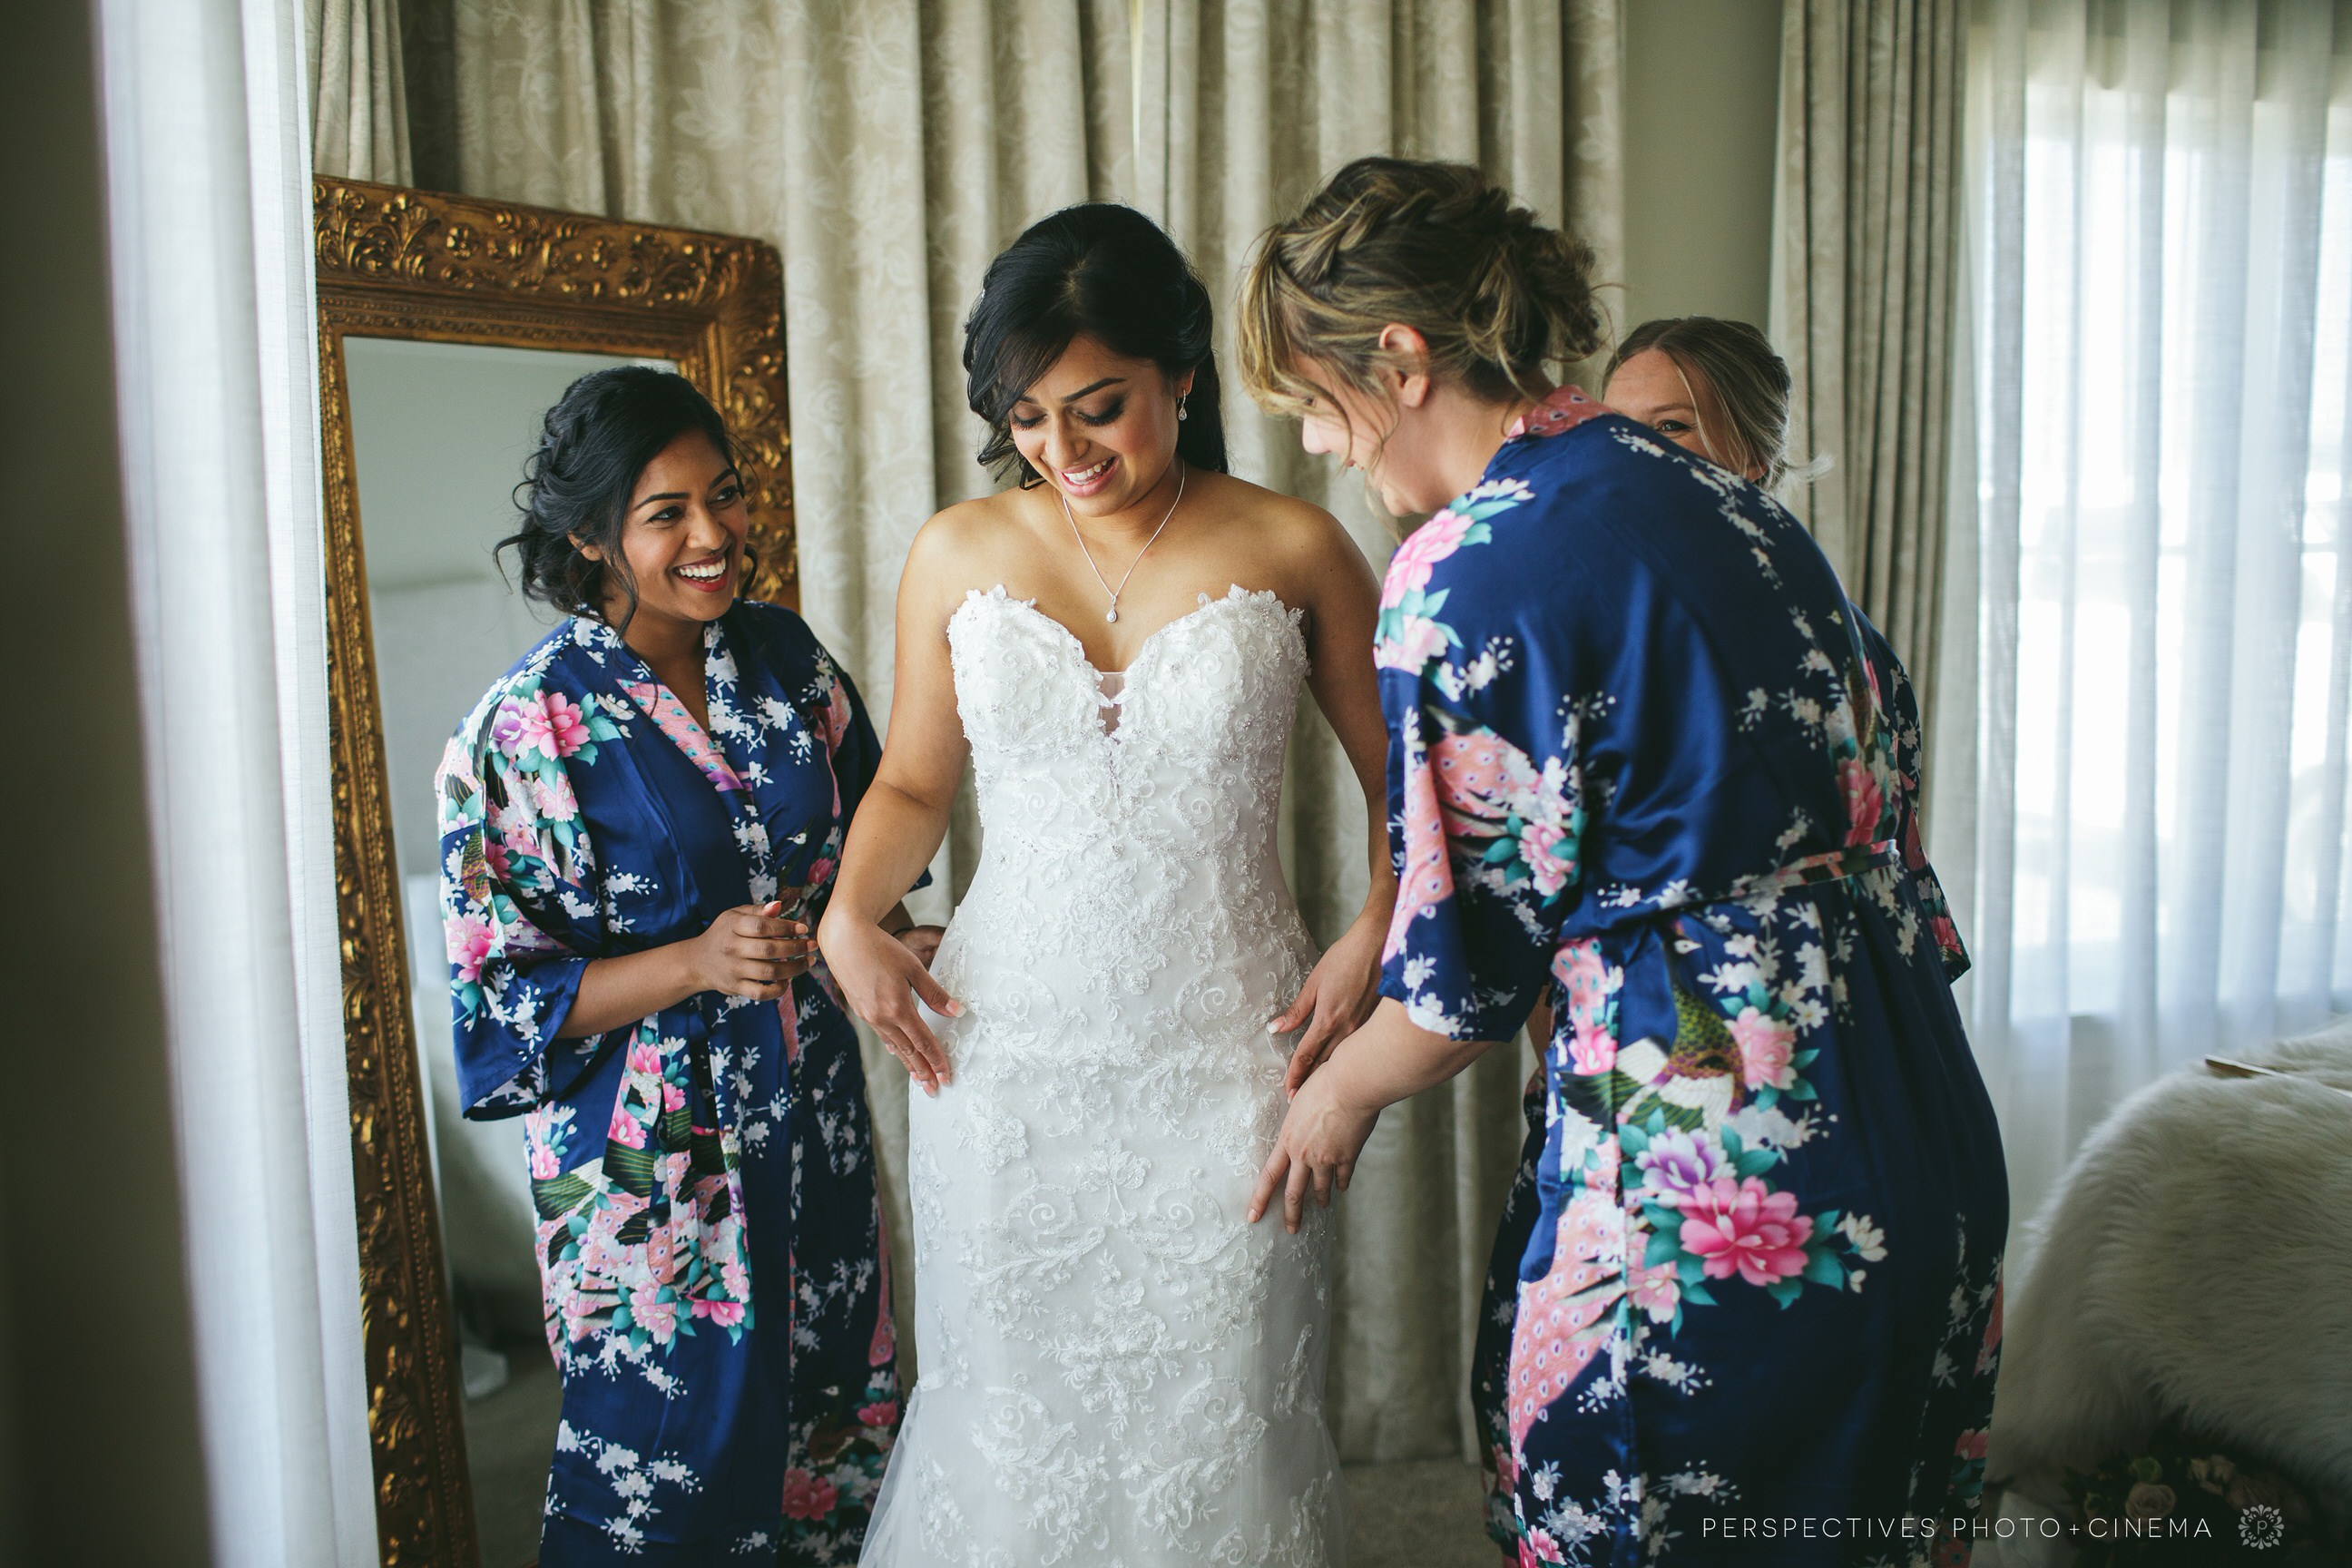 Mudbrick wedding photos